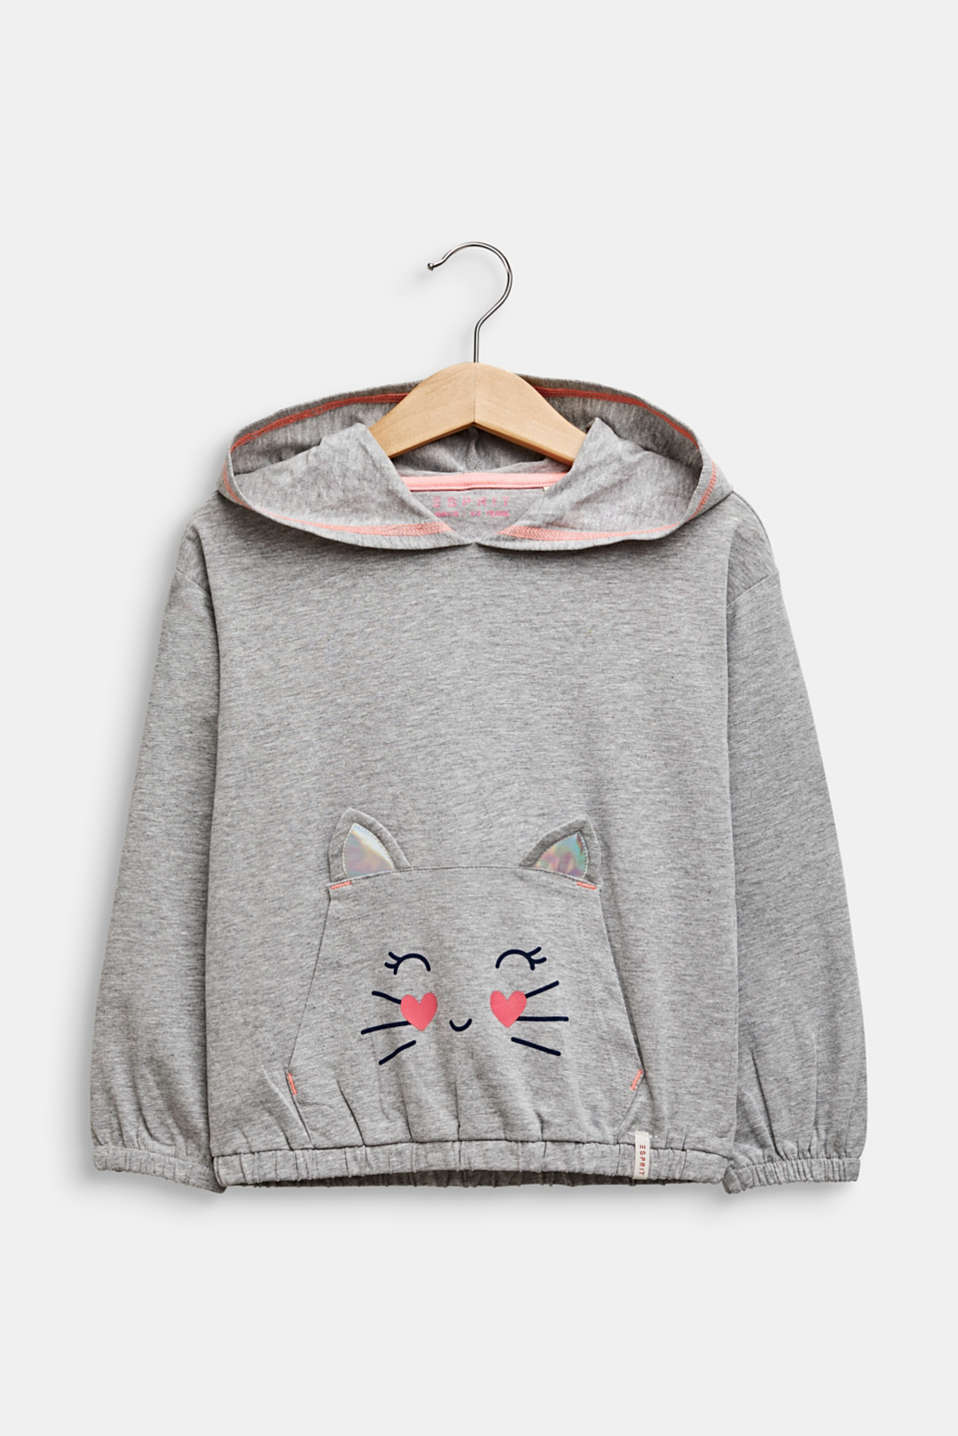 Hooded long sleeve top with a cat face